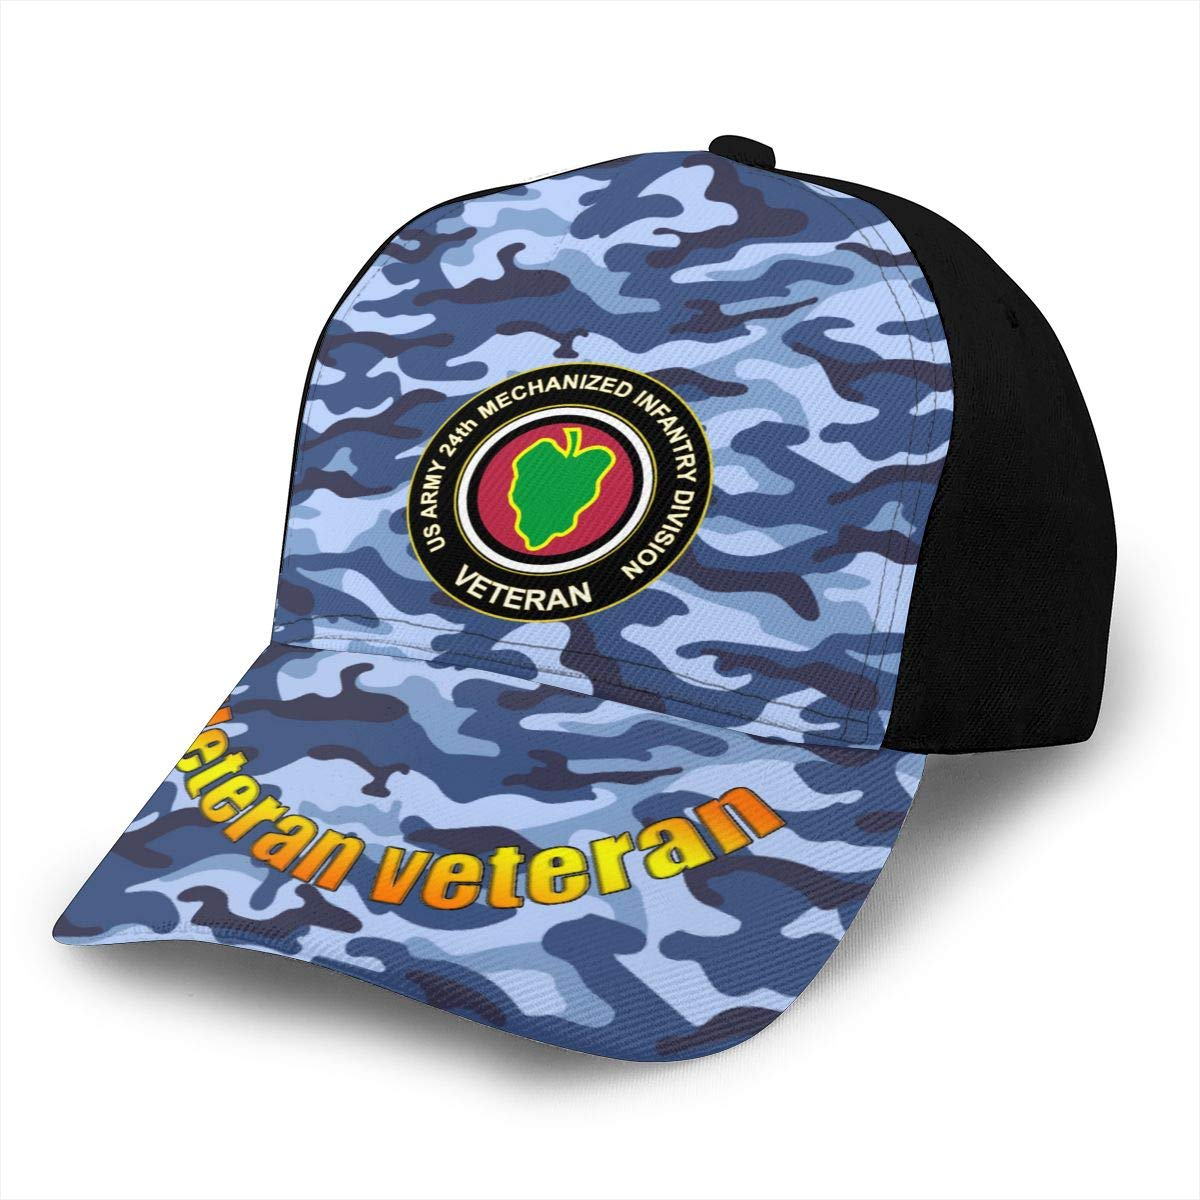 US Army Veteran 24th Mechnized Infantry Division Classic Adult Cap Printing Duck Tongue Baseball Hats Snapback Unisex Cap